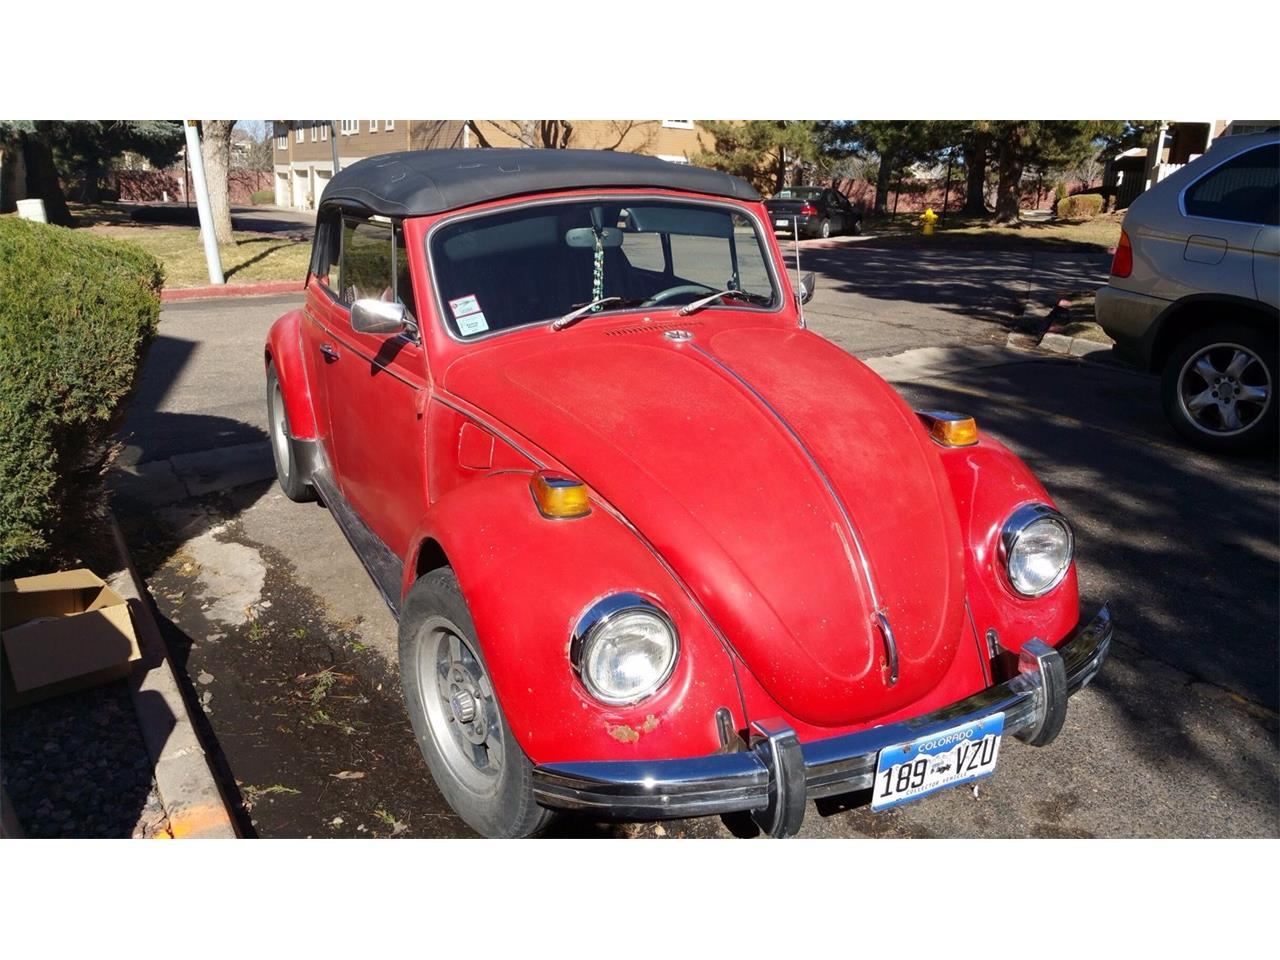 Large Picture of Classic '70 Volkswagen Cabriolet - $9,000.00 Offered by a Private Seller - P1AC